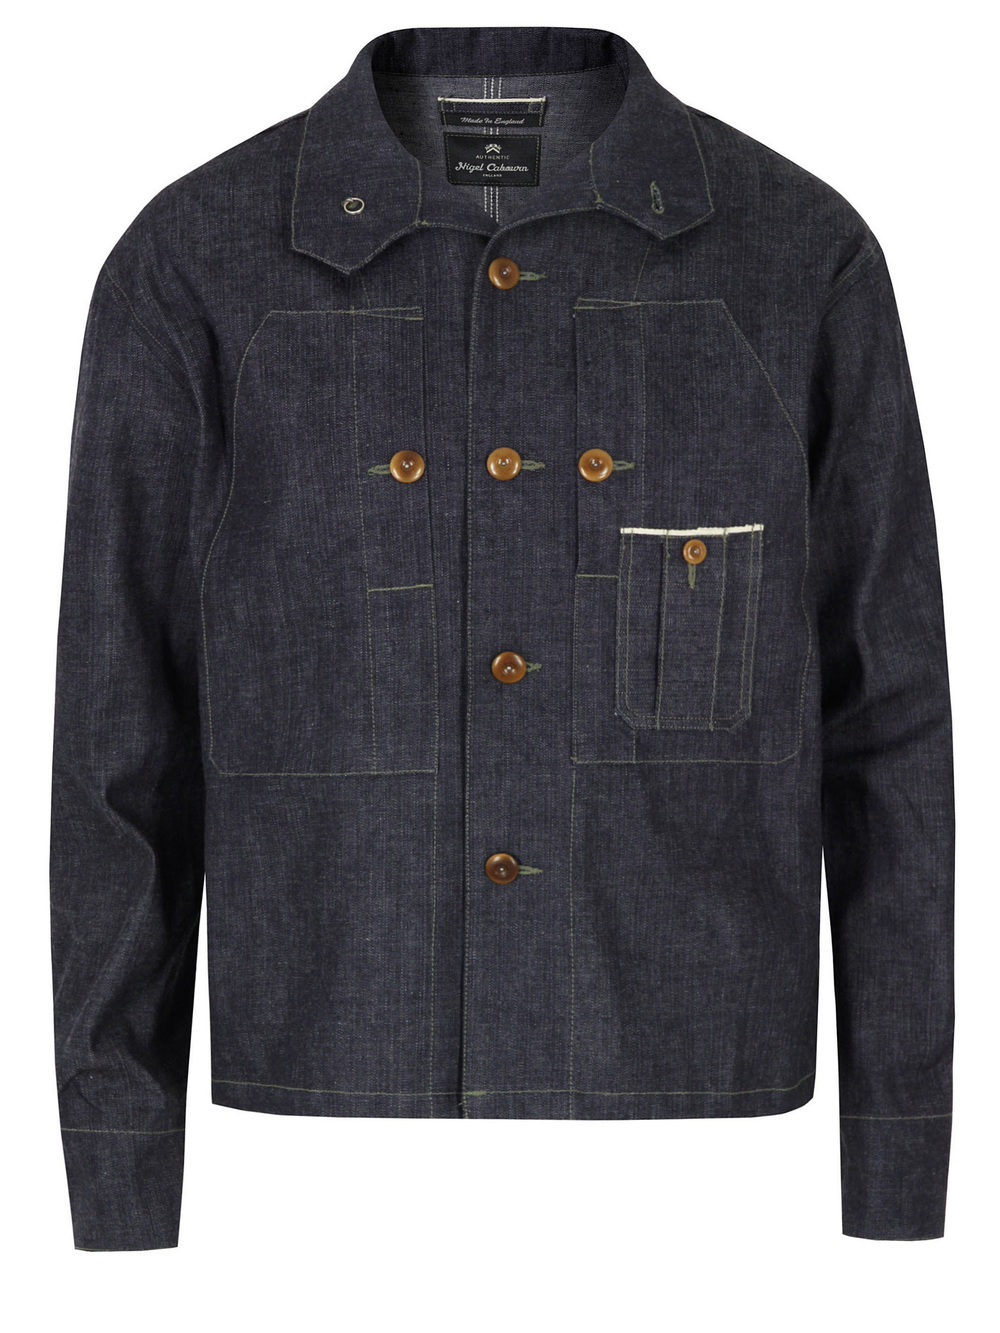 Nigel-Cabourn-mens-Indigo-Chest-Pocket-Shirt-Jacket-1.jpg